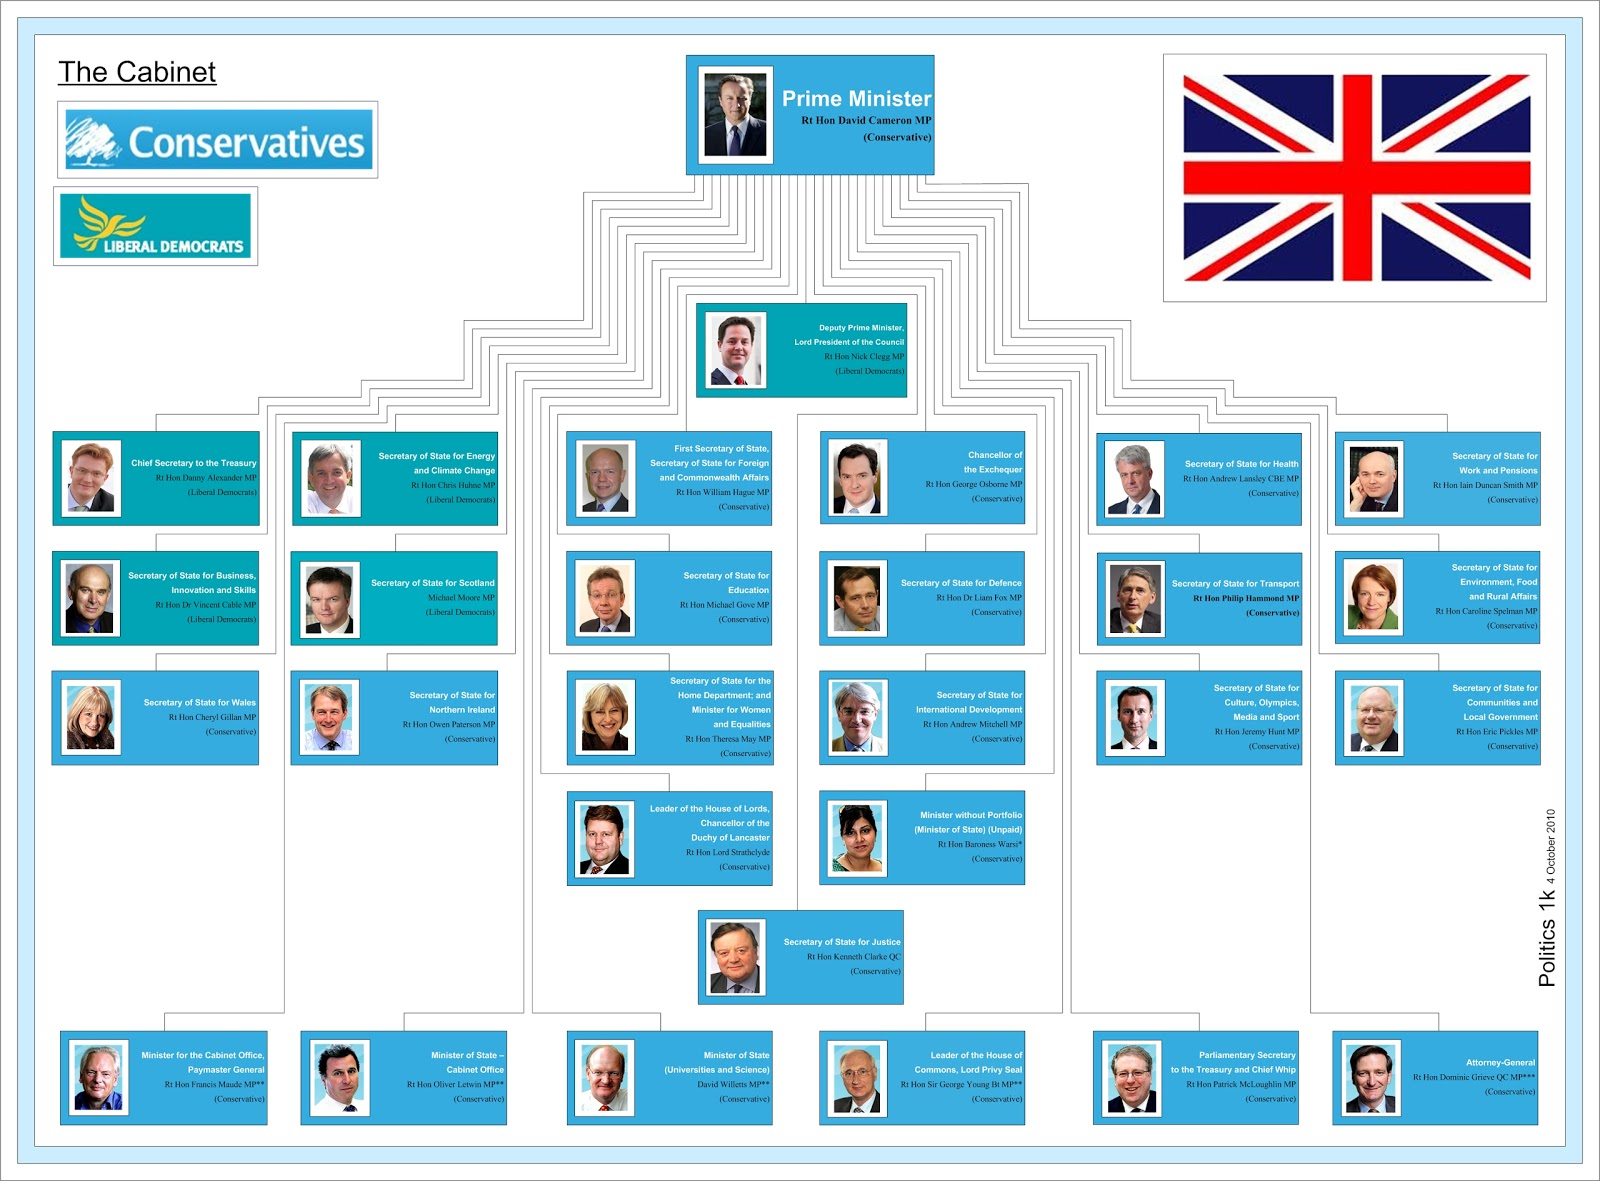 an overview of the functions of the cabinet of the government of the united kingdom Functions of government in trying to form a more perfect union, the framers of the constitution spelled out several key functions government must perform this activity tests your knowledge about the functions of government.